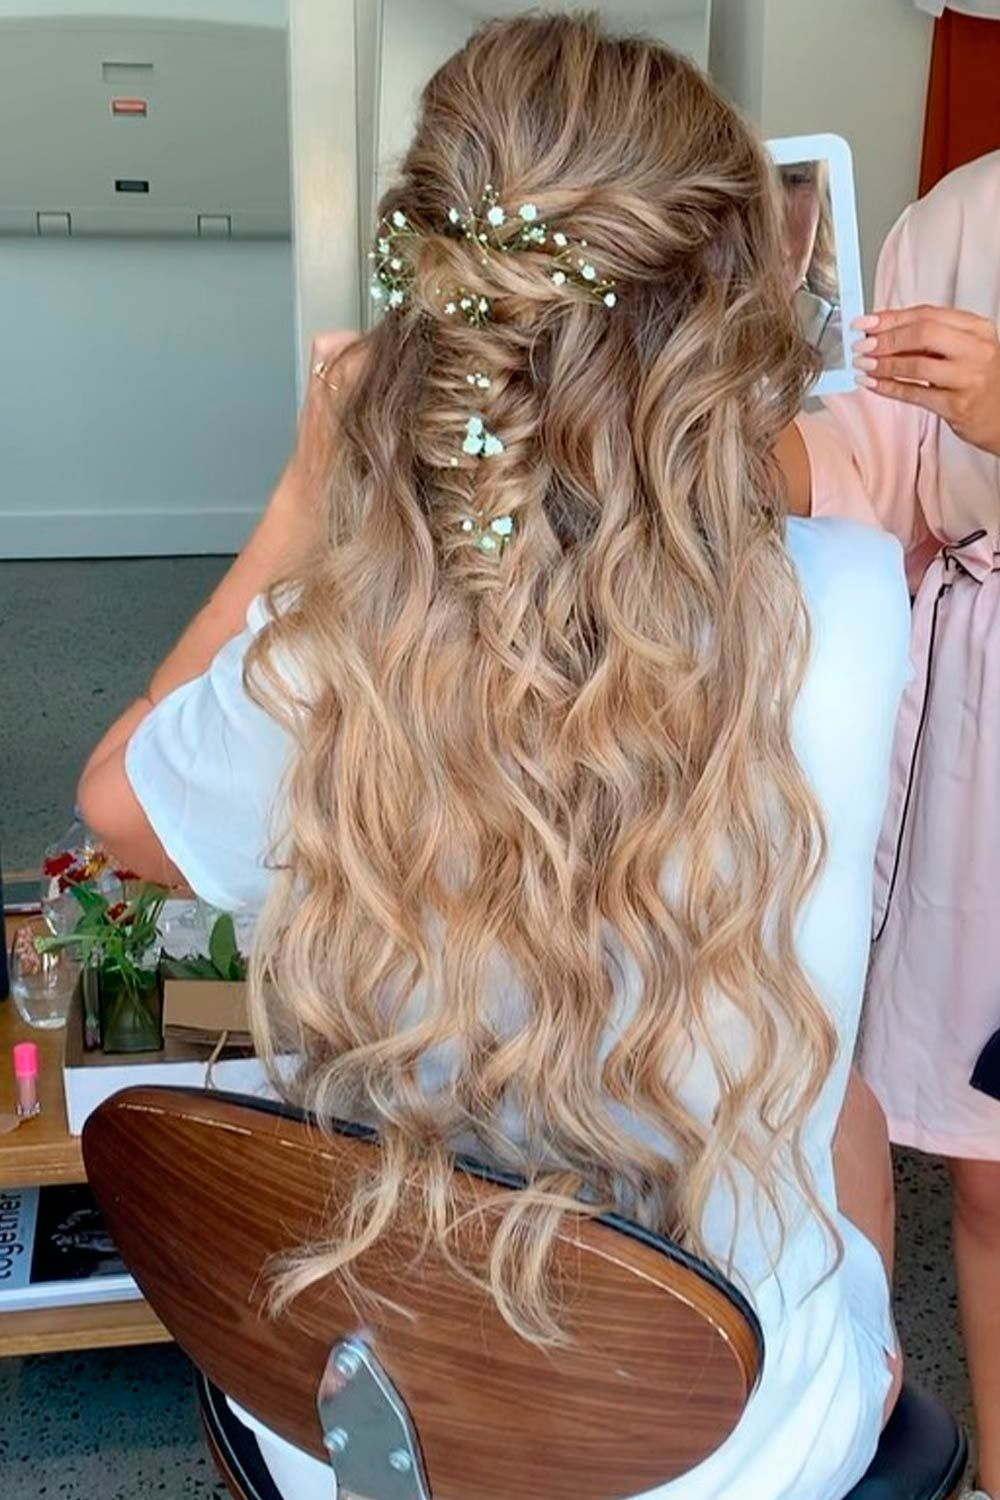 Twisted Half-Up Into Braid